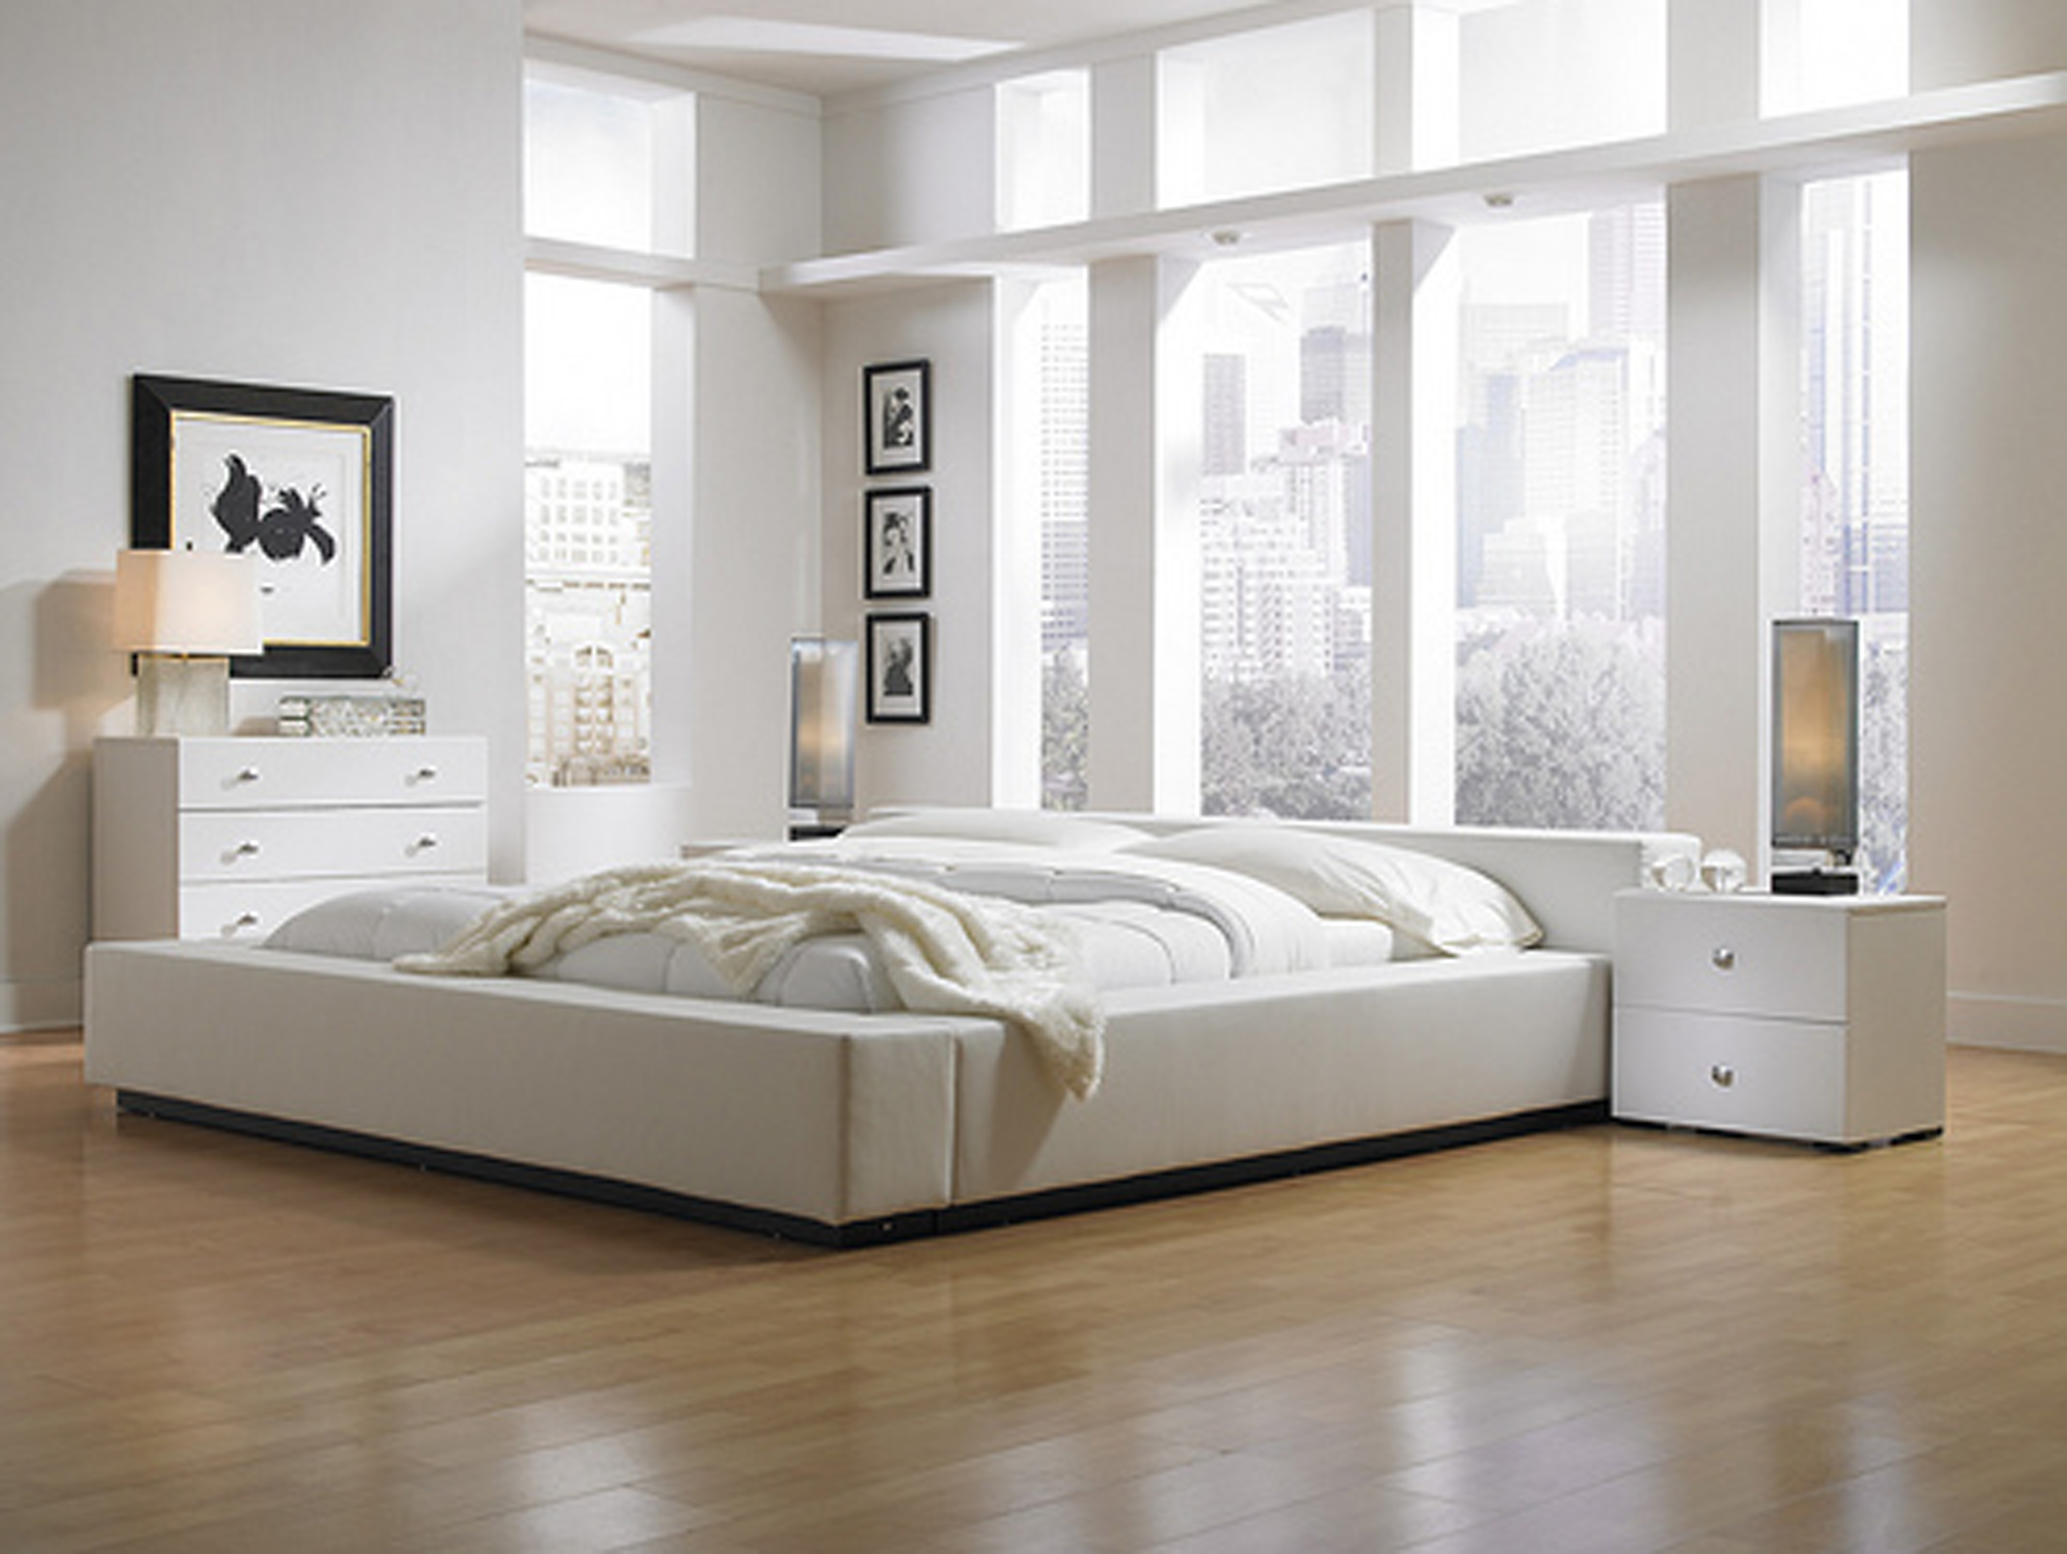 bedroom furniture designs images photo - 3